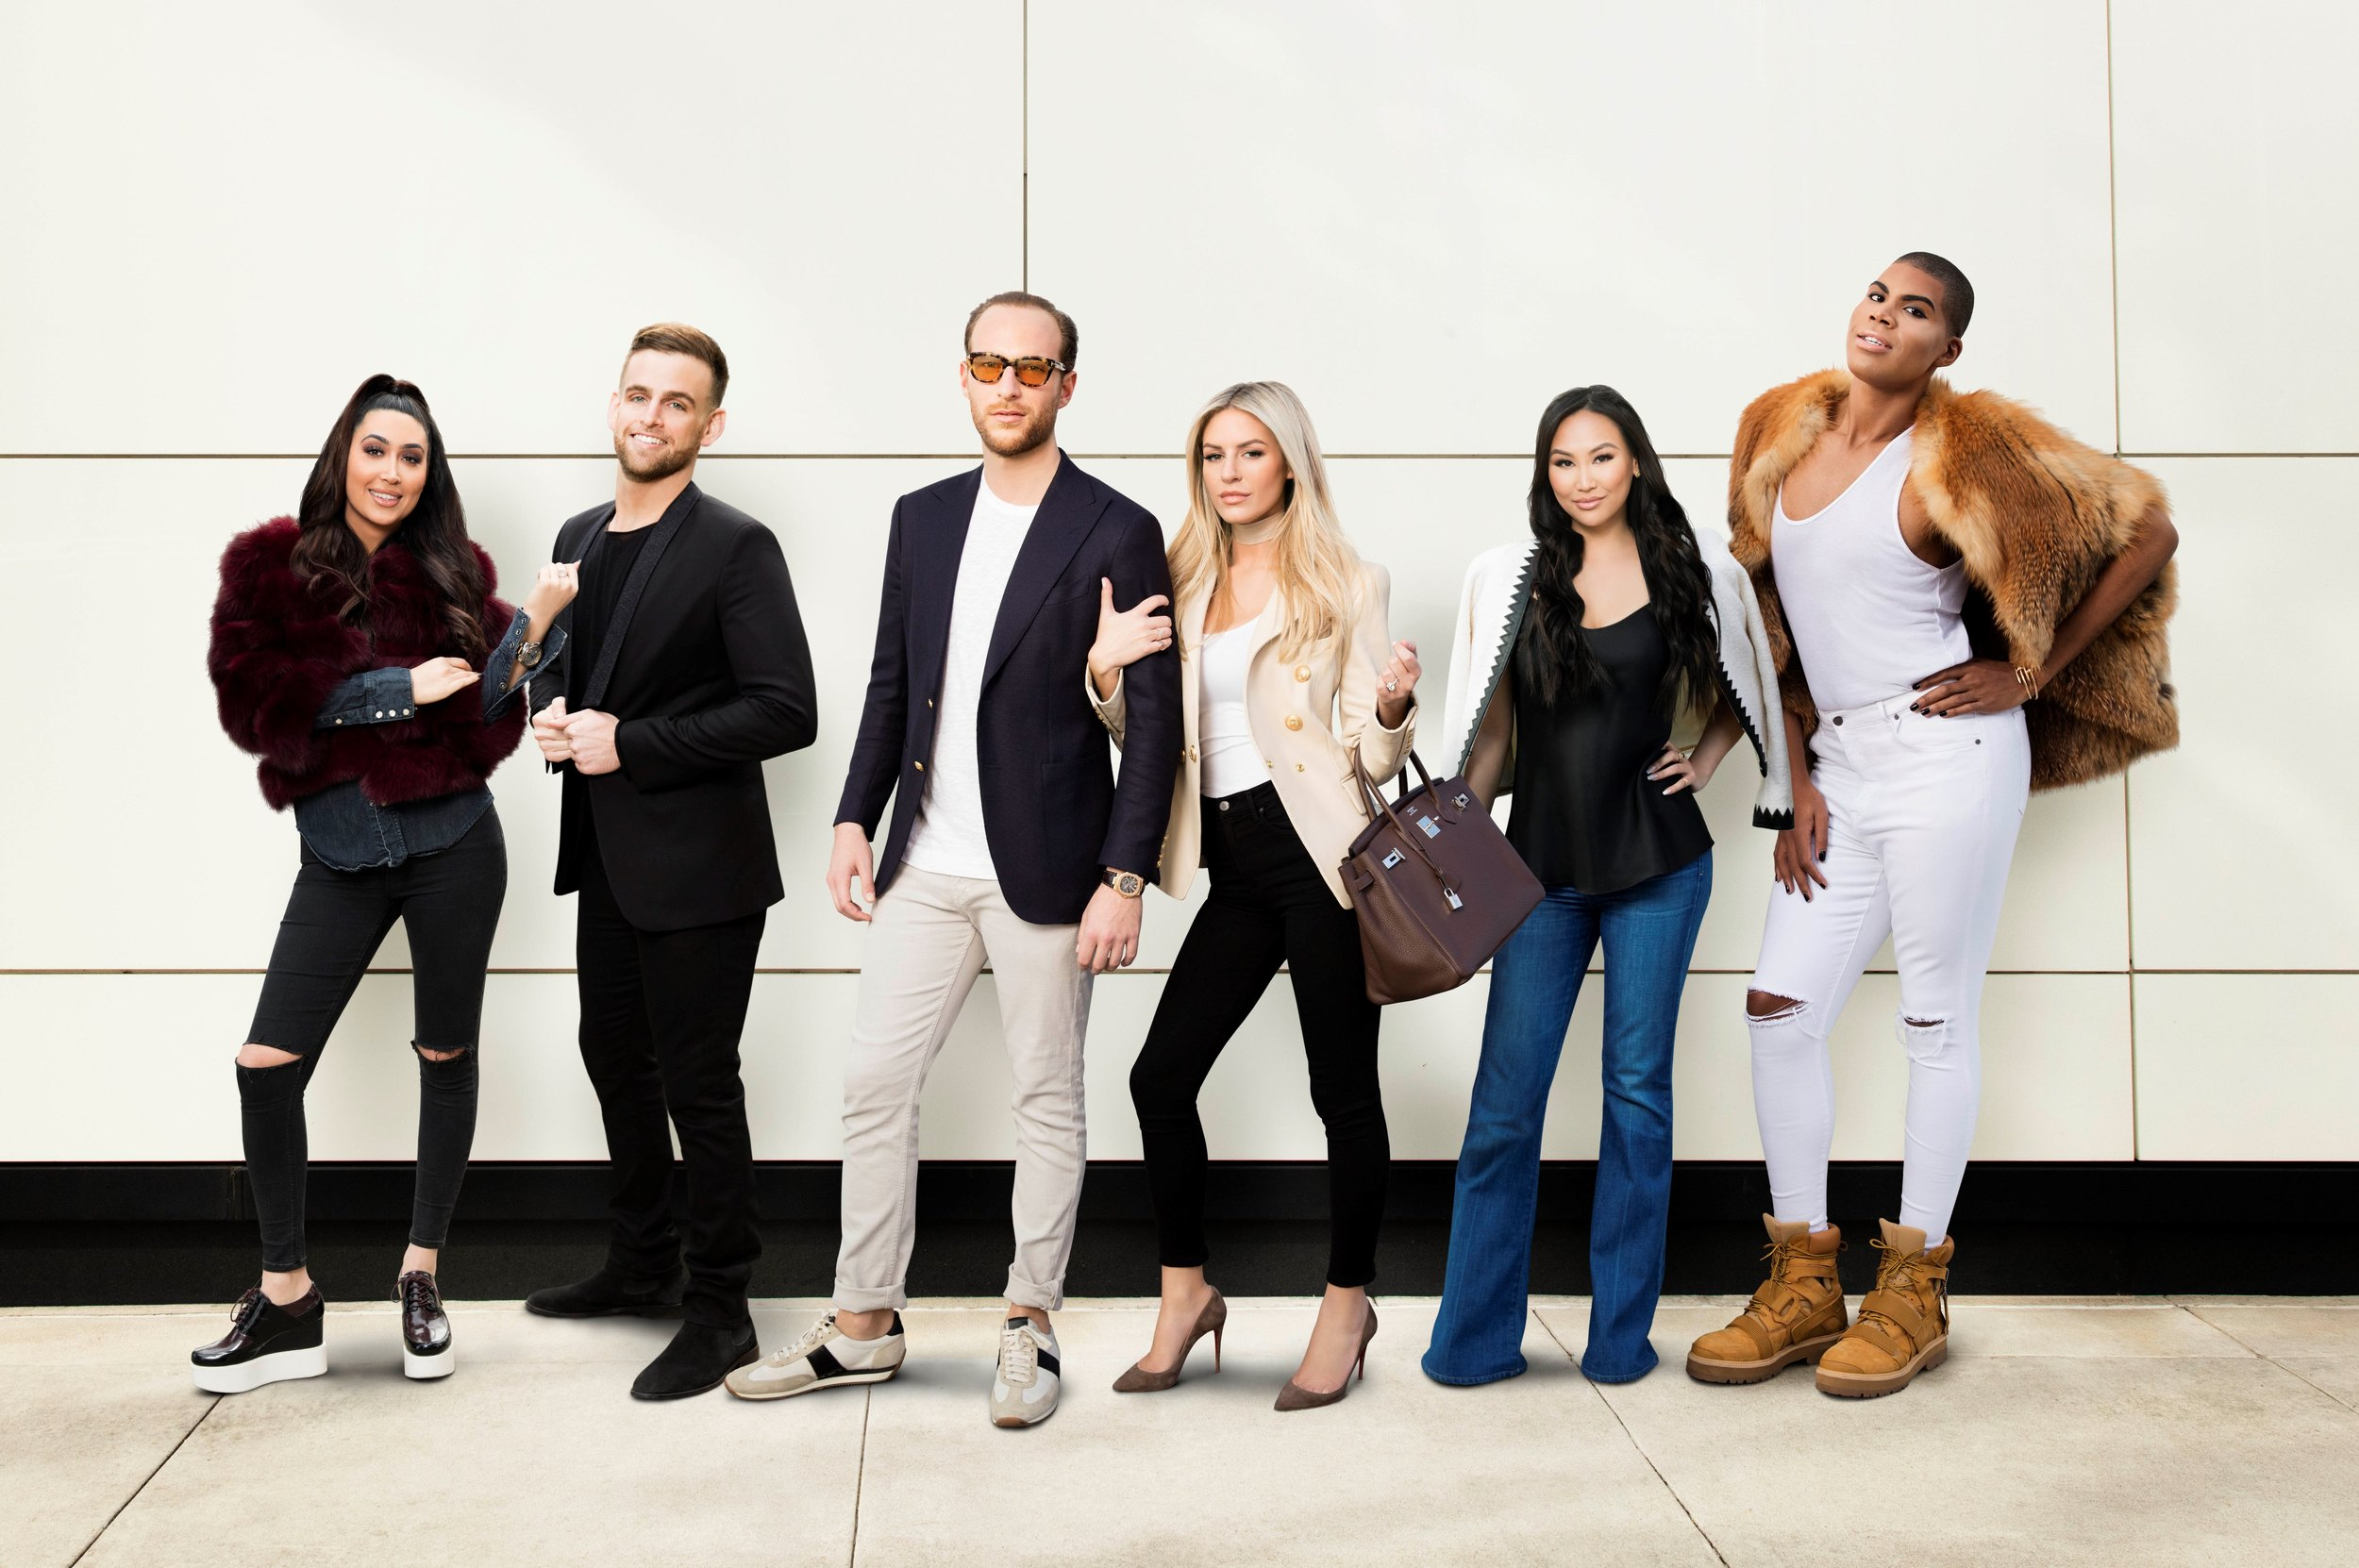 The cast of American reality television series;Rich Kids of Beverly Hills. Photo source:E! Entertainment Television, LLC.